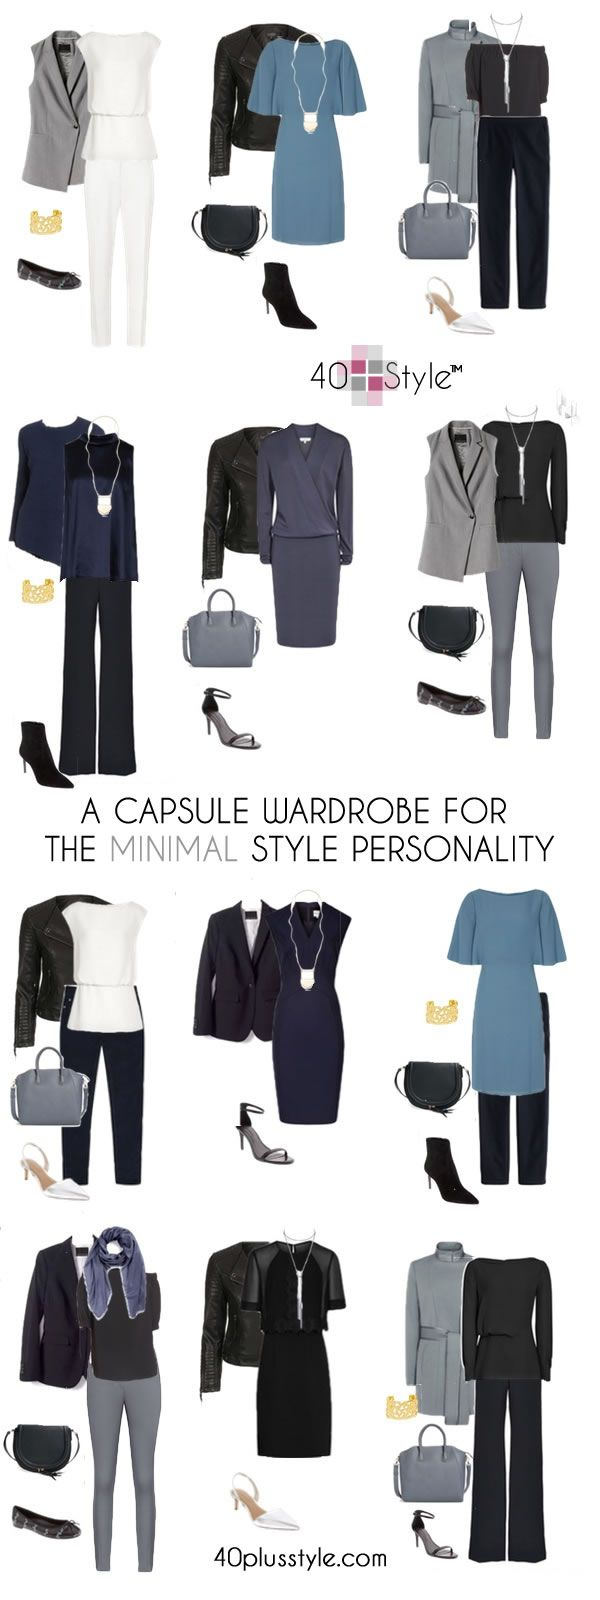 dde4ffbfda2 Here are twelve looks we created for the minimalist style capsule wardrobe,  plus you can shop the boutique for these looks and more to create your own  ...